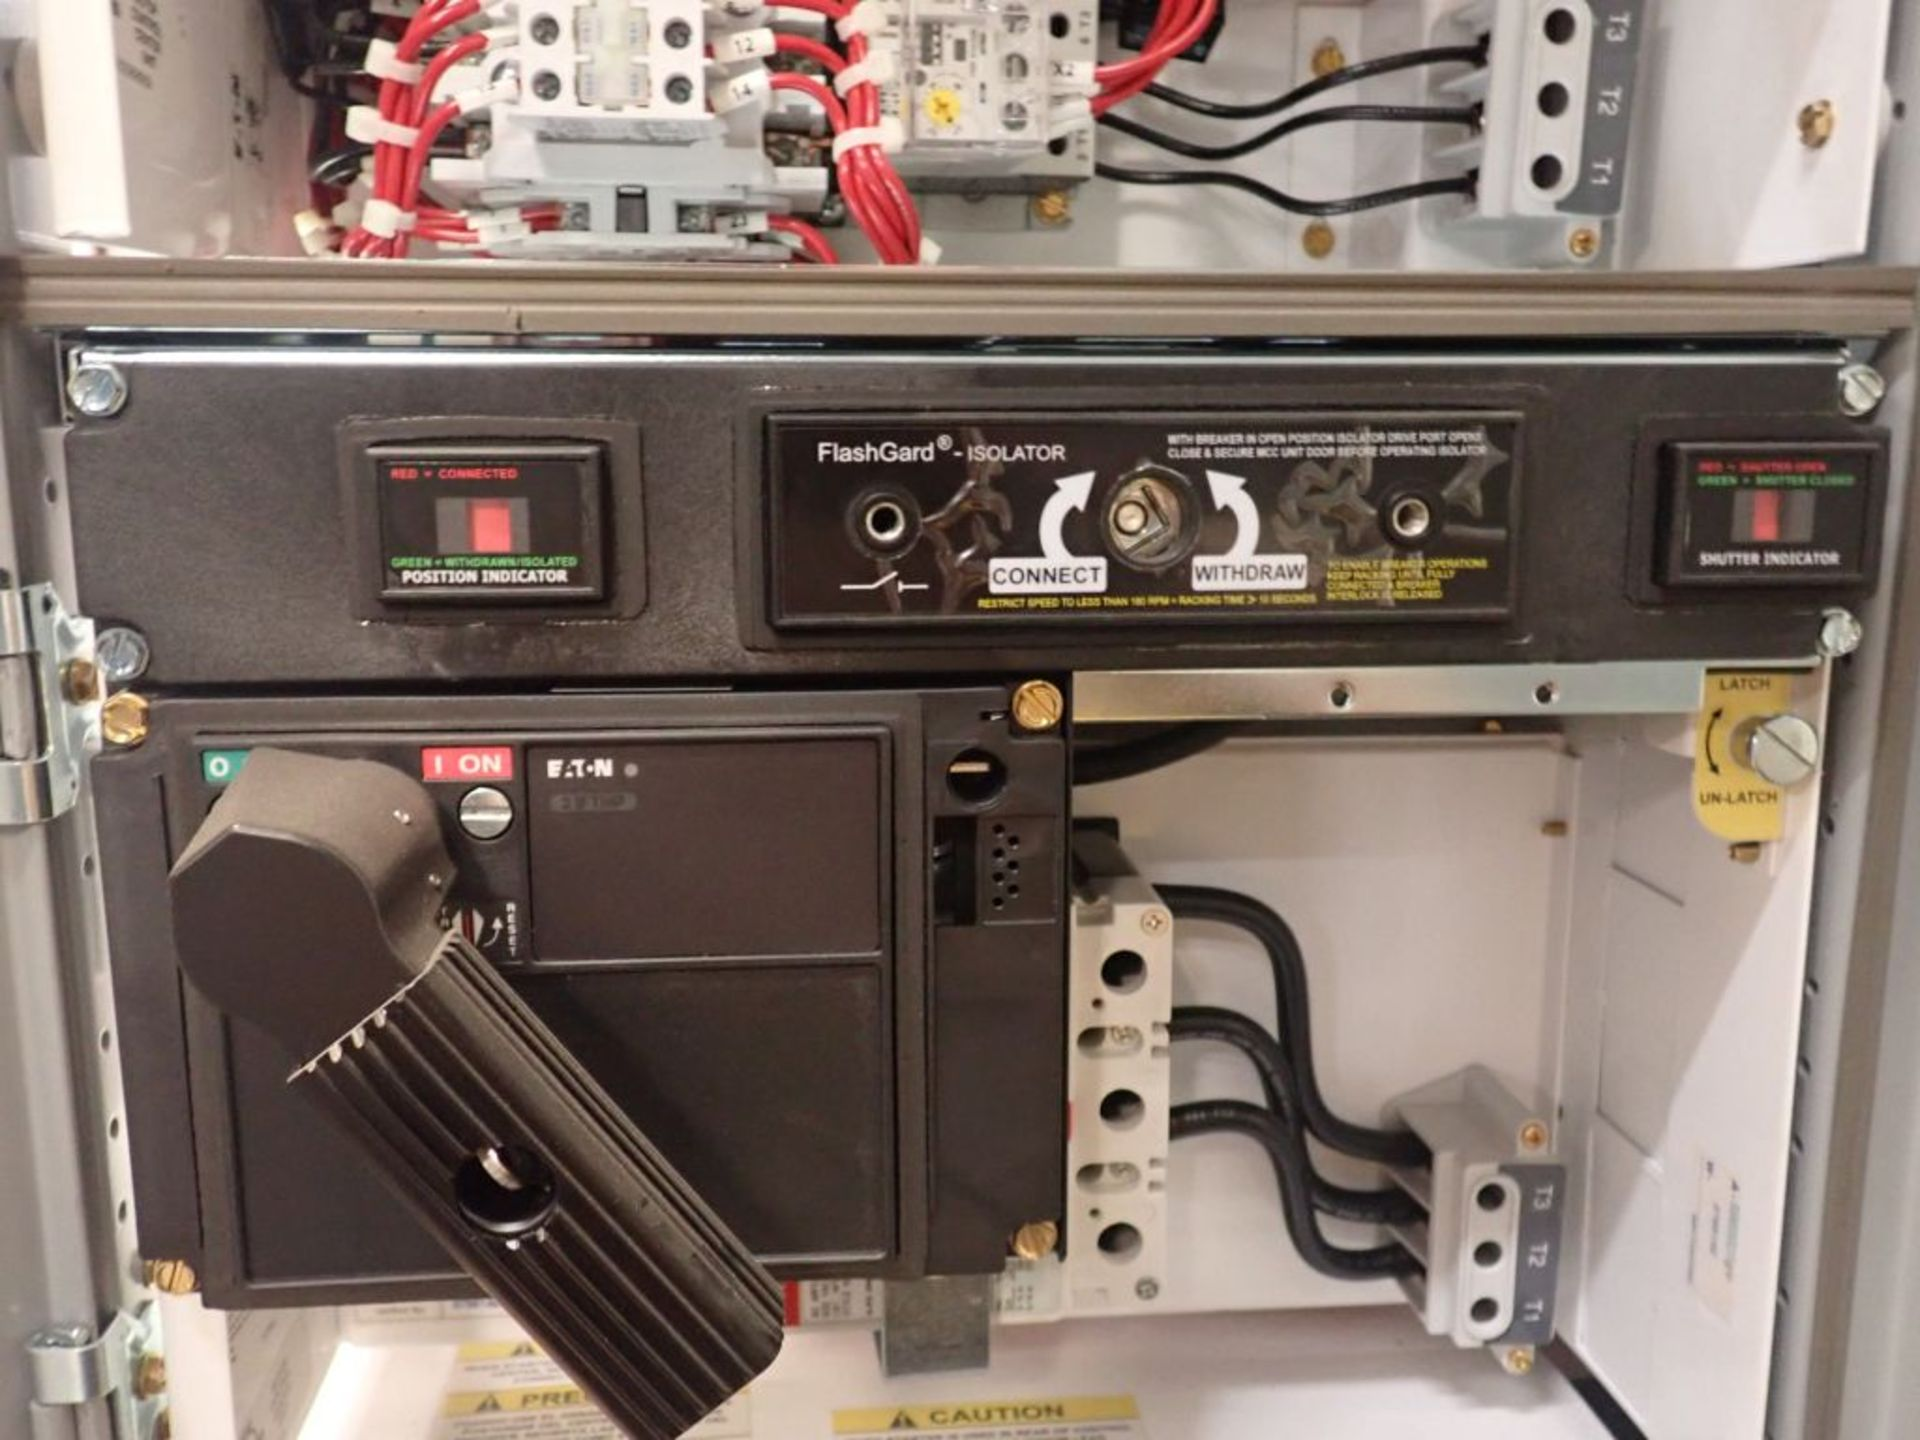 Eaton Freedom Flashgard Motor Control Center w/Components | (5) F206-15A-10HP; (4) F206-30A-10HP; ( - Image 62 of 84